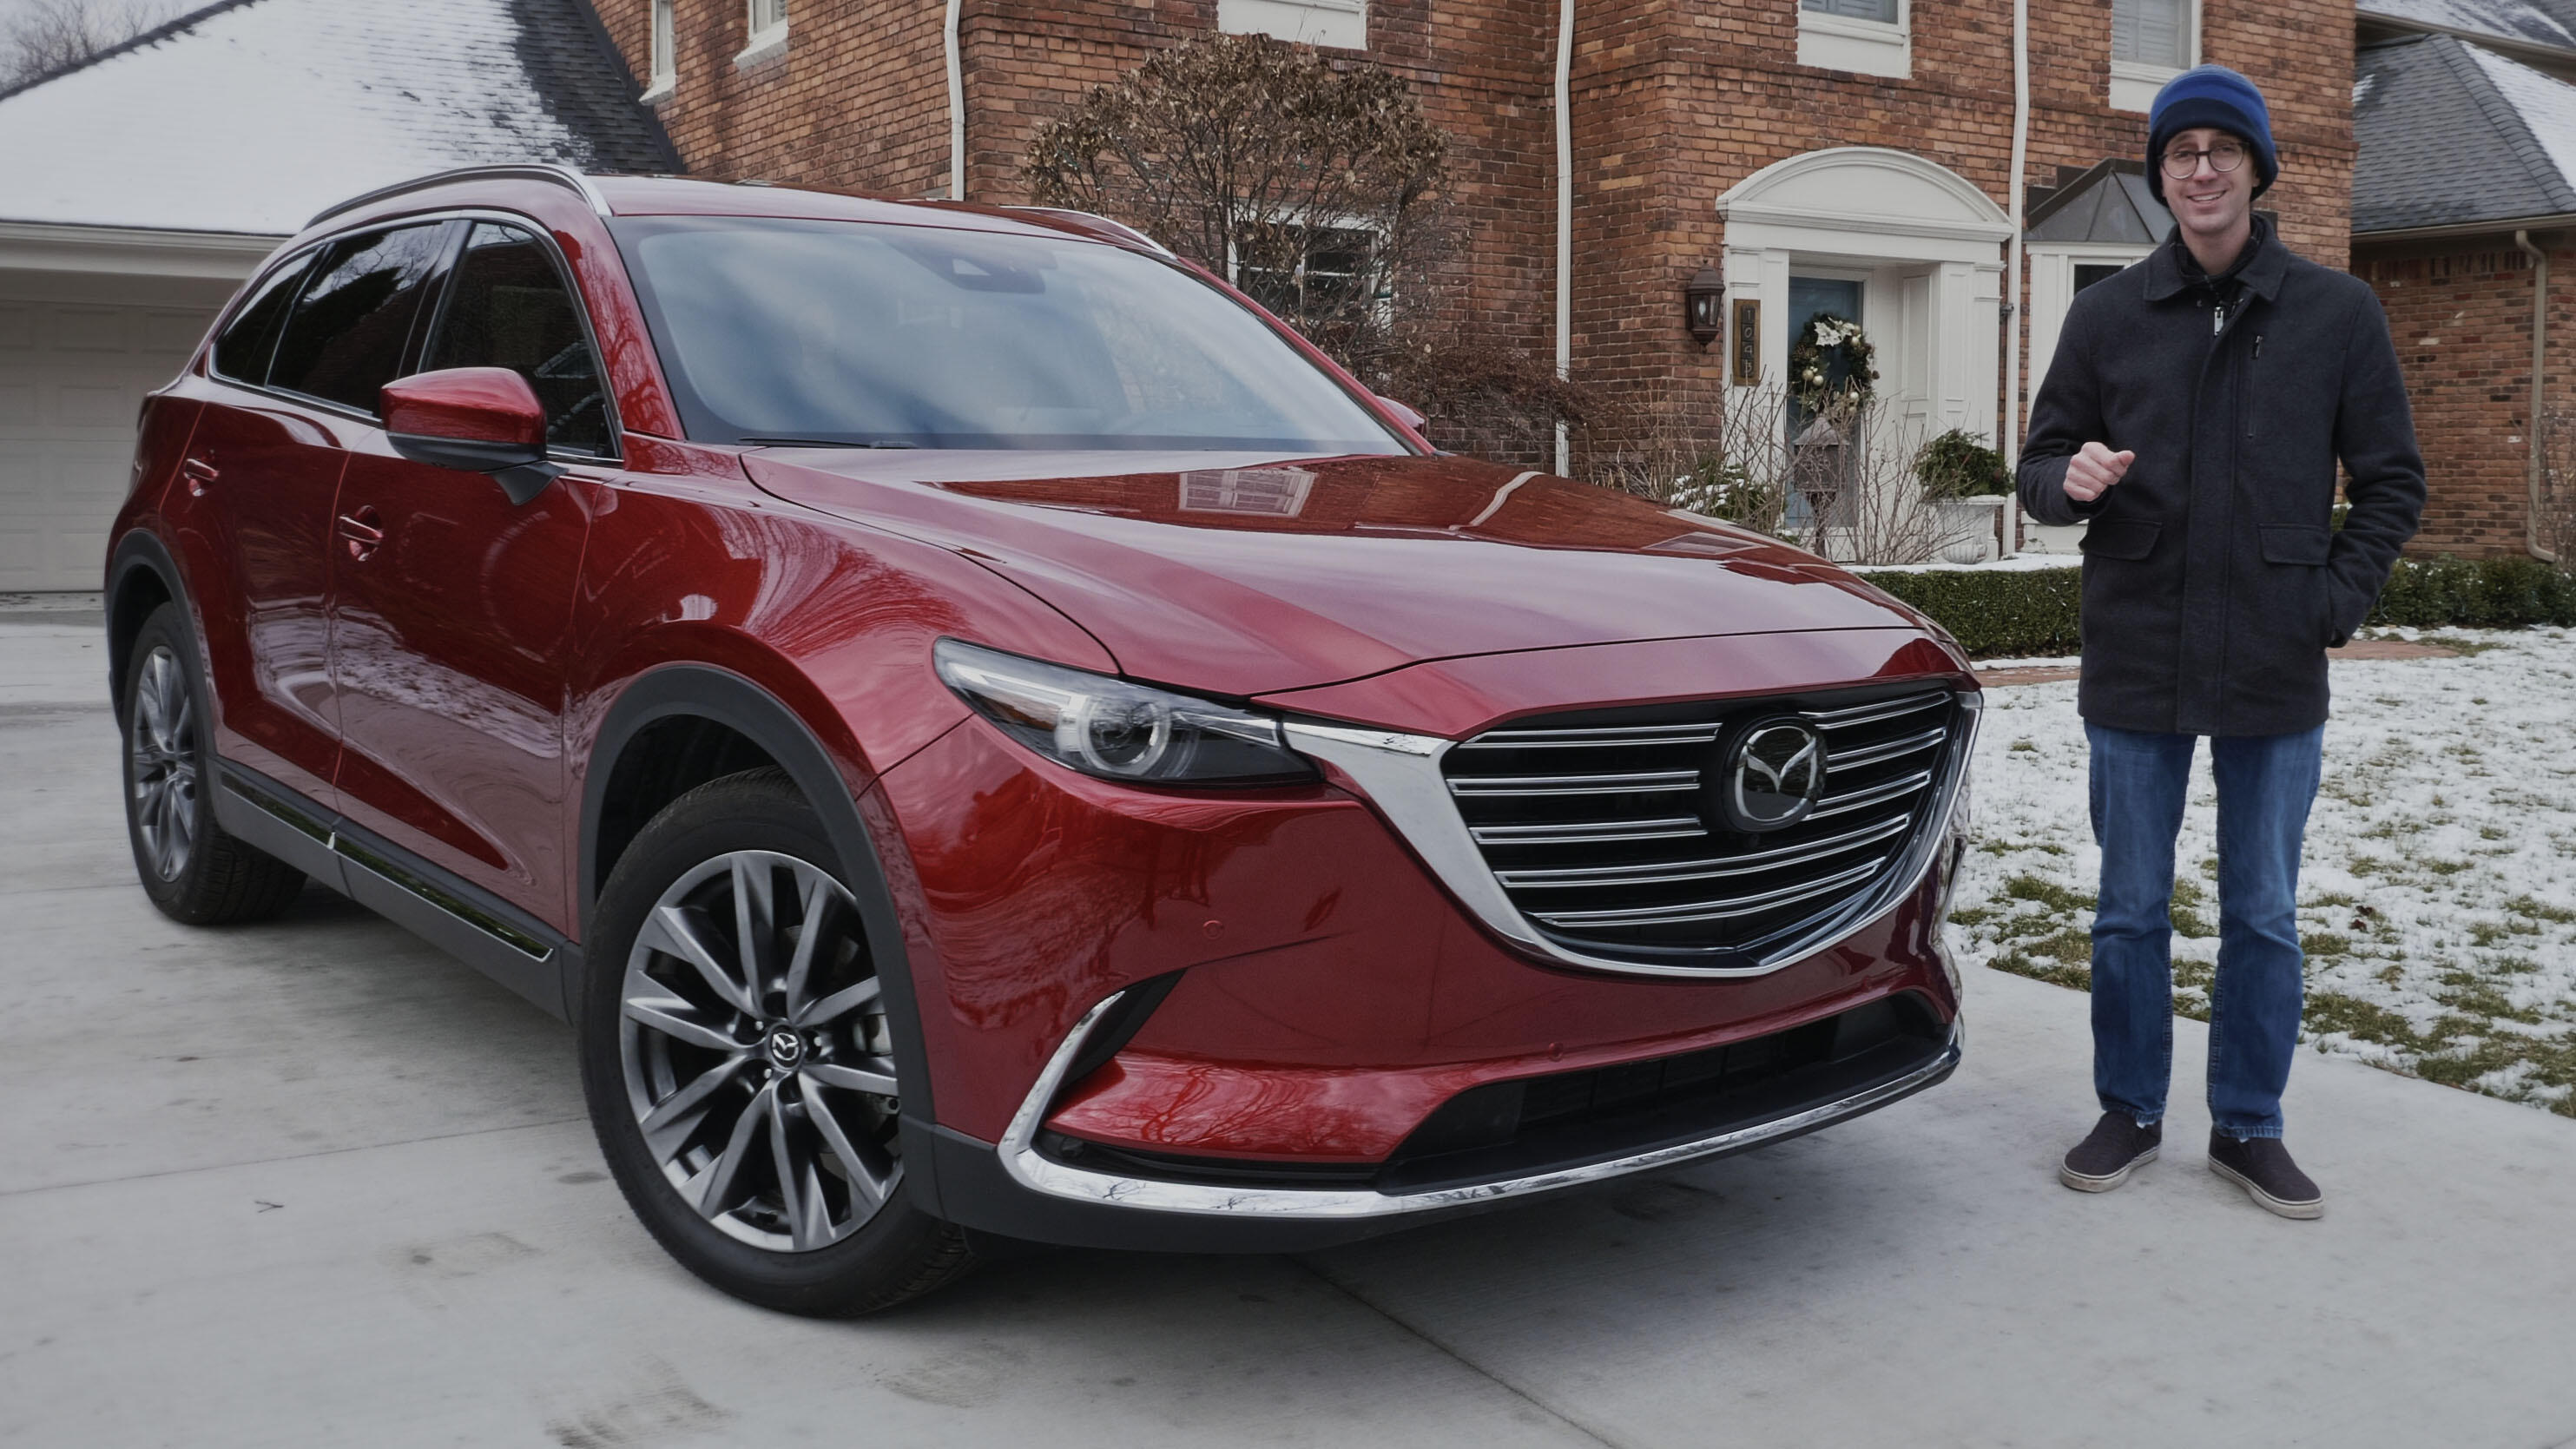 Video: 2020 Mazda CX-9 Touring is nicer than some luxury vehicles.